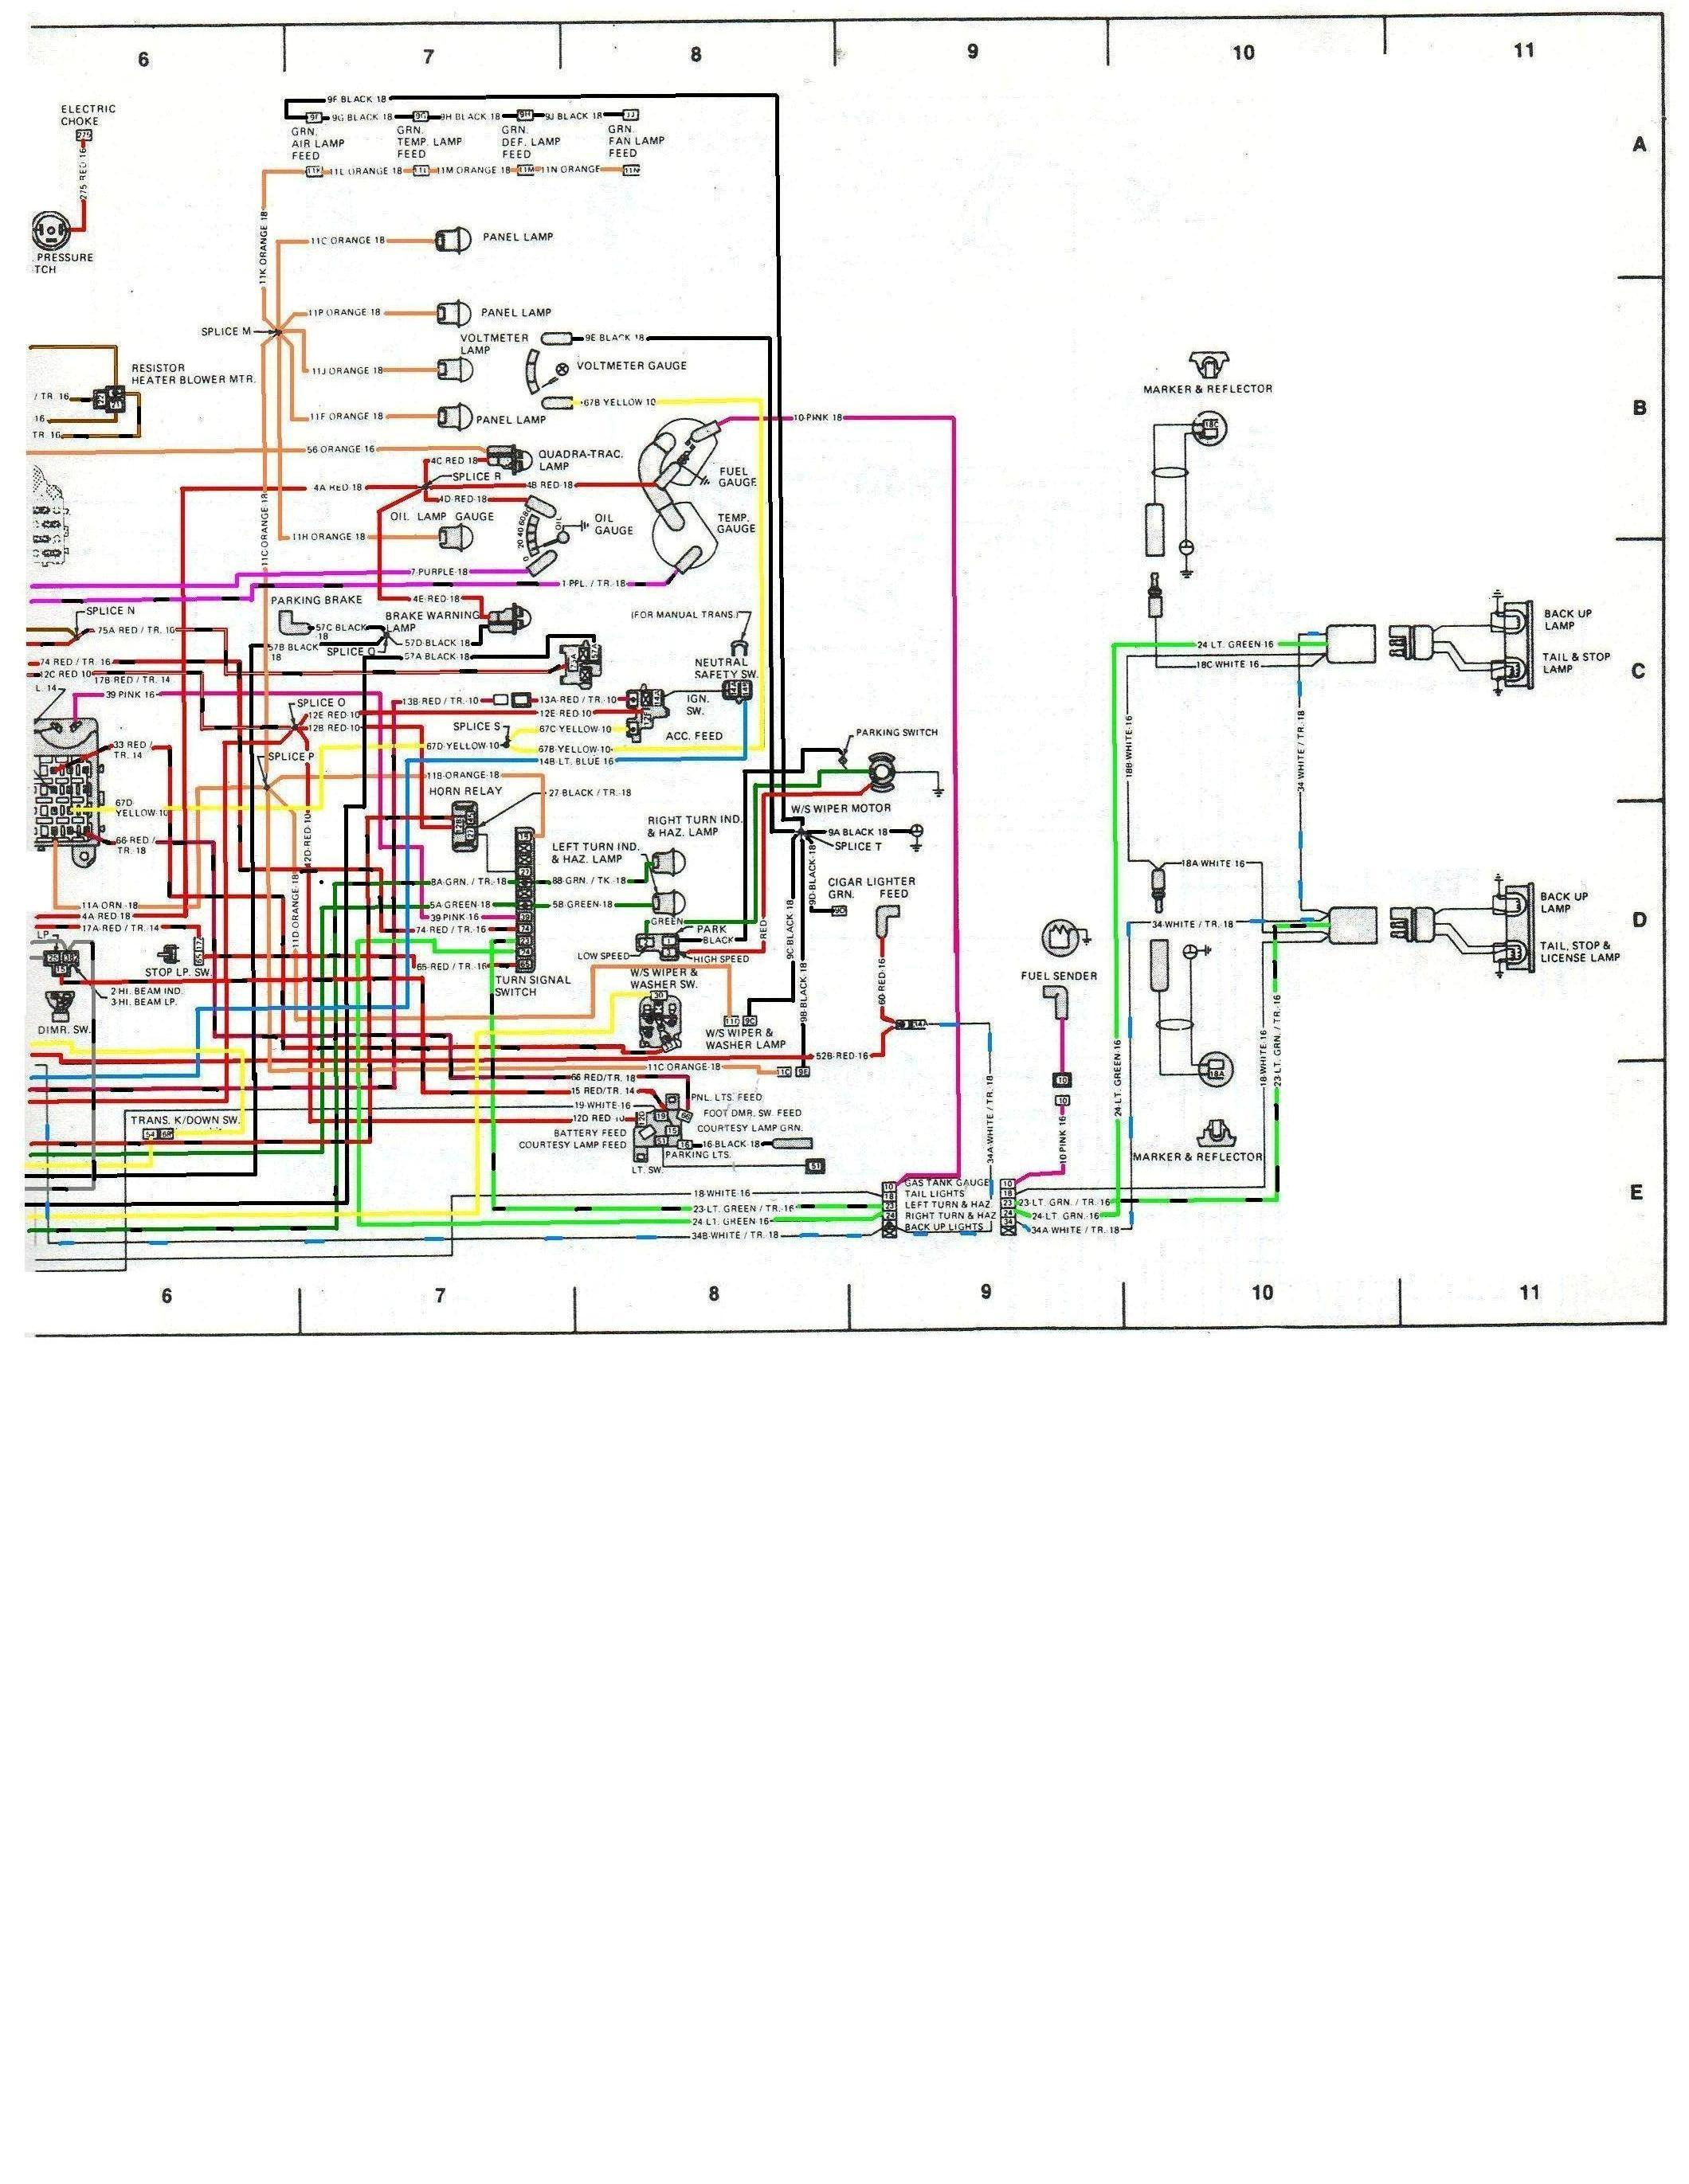 jeep cj7 wiring schematic electrical diagrams forum u2022 rh jimmellon co uk jeep cj7 wiring diagrams 1981 jeep cj7 wiring schematic